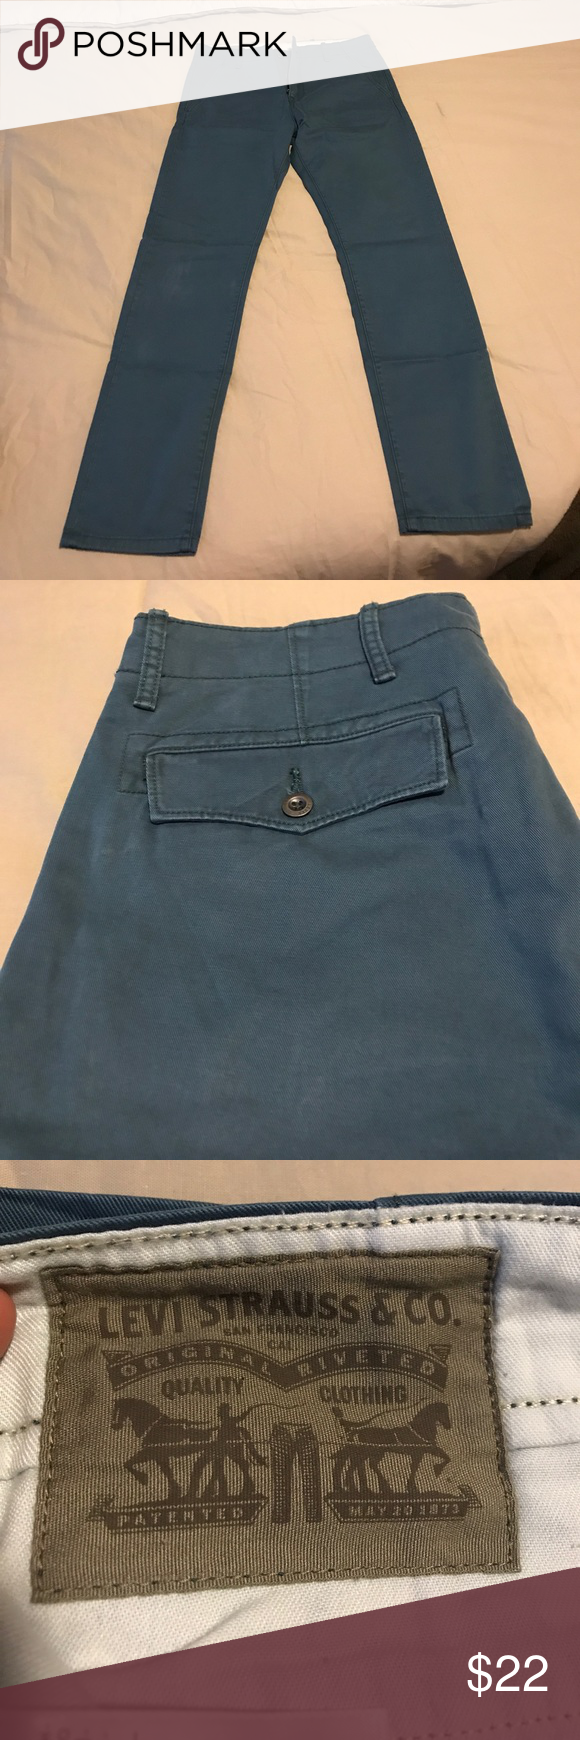 Levi's 513 chinos 33 22 blue Got last year but don't fit. Worn few times Levi's Pants Chinos & Khakis